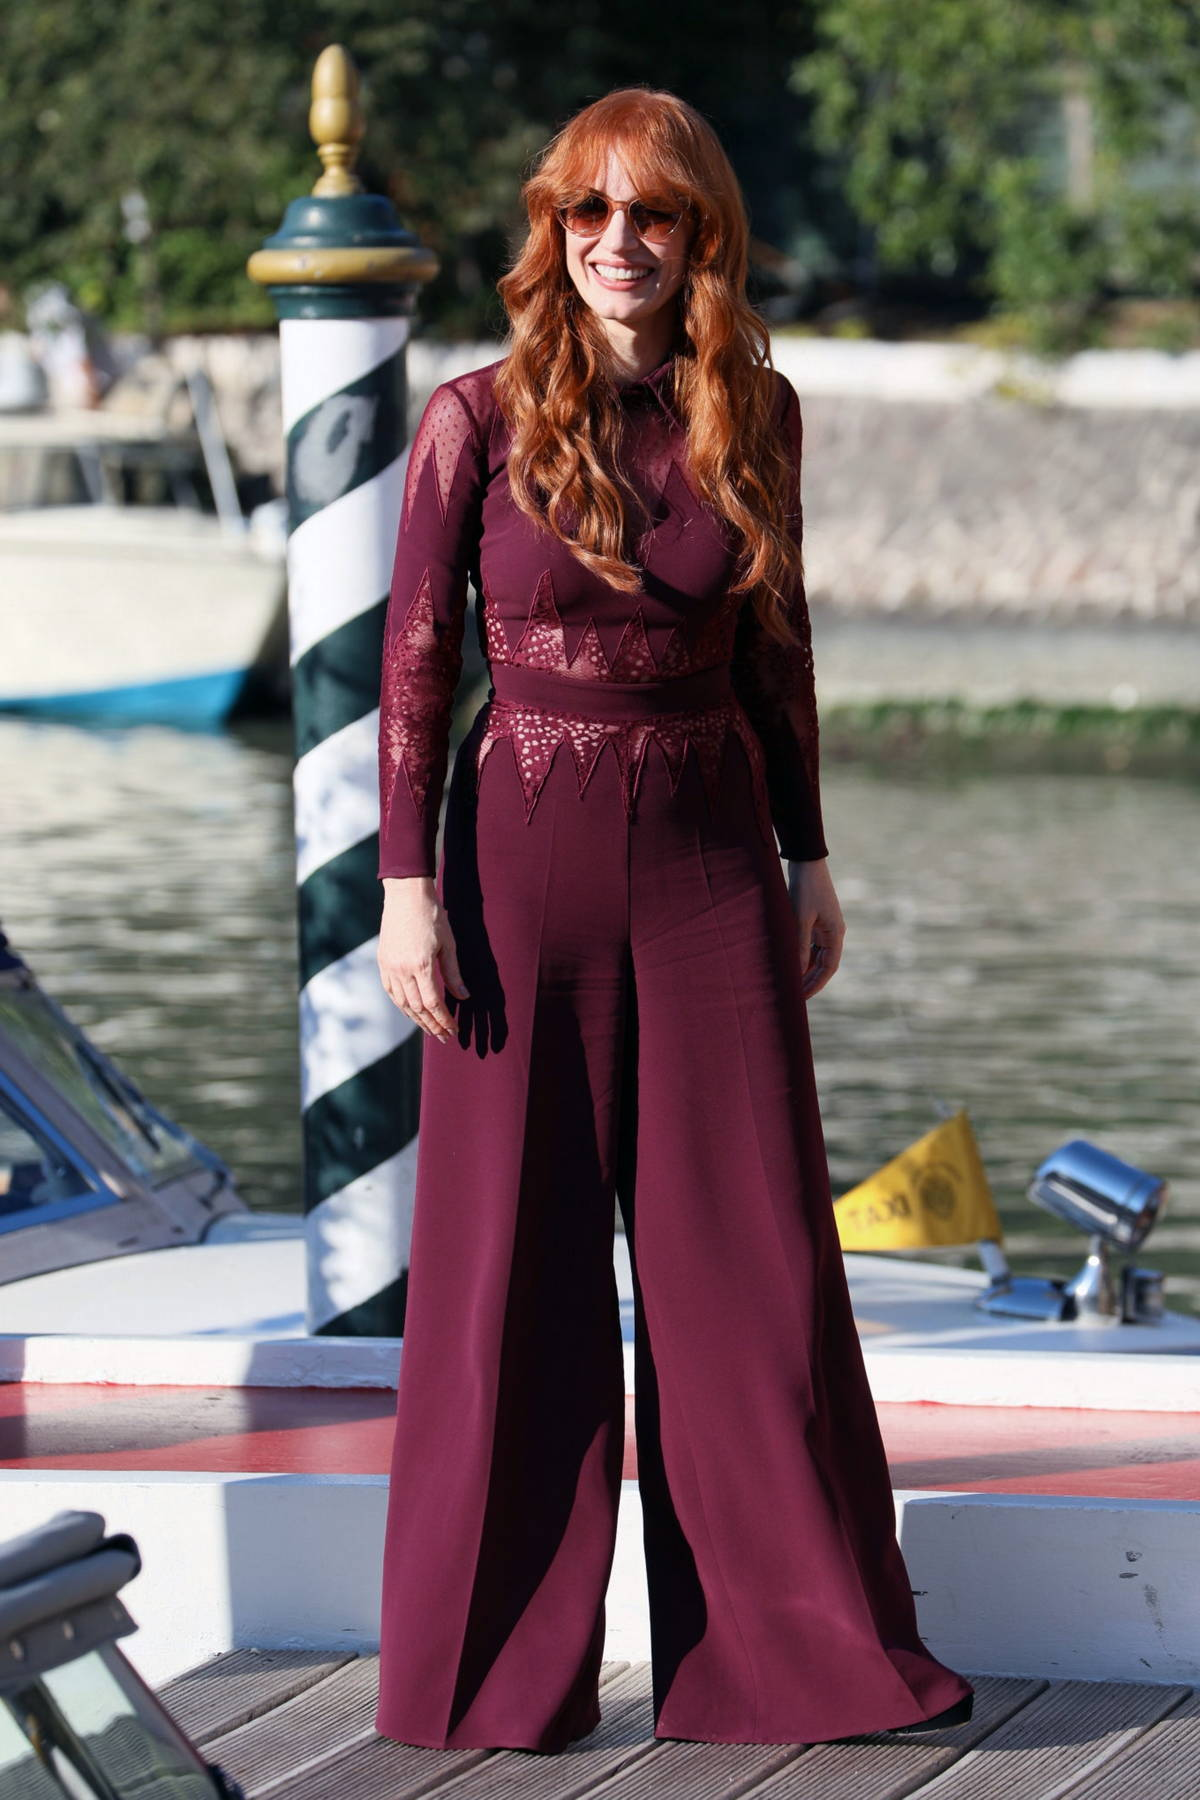 Jessica Chastain looks chic in burgundy as she arrives at the 78th Venice International Film Festival in Venice, Italy